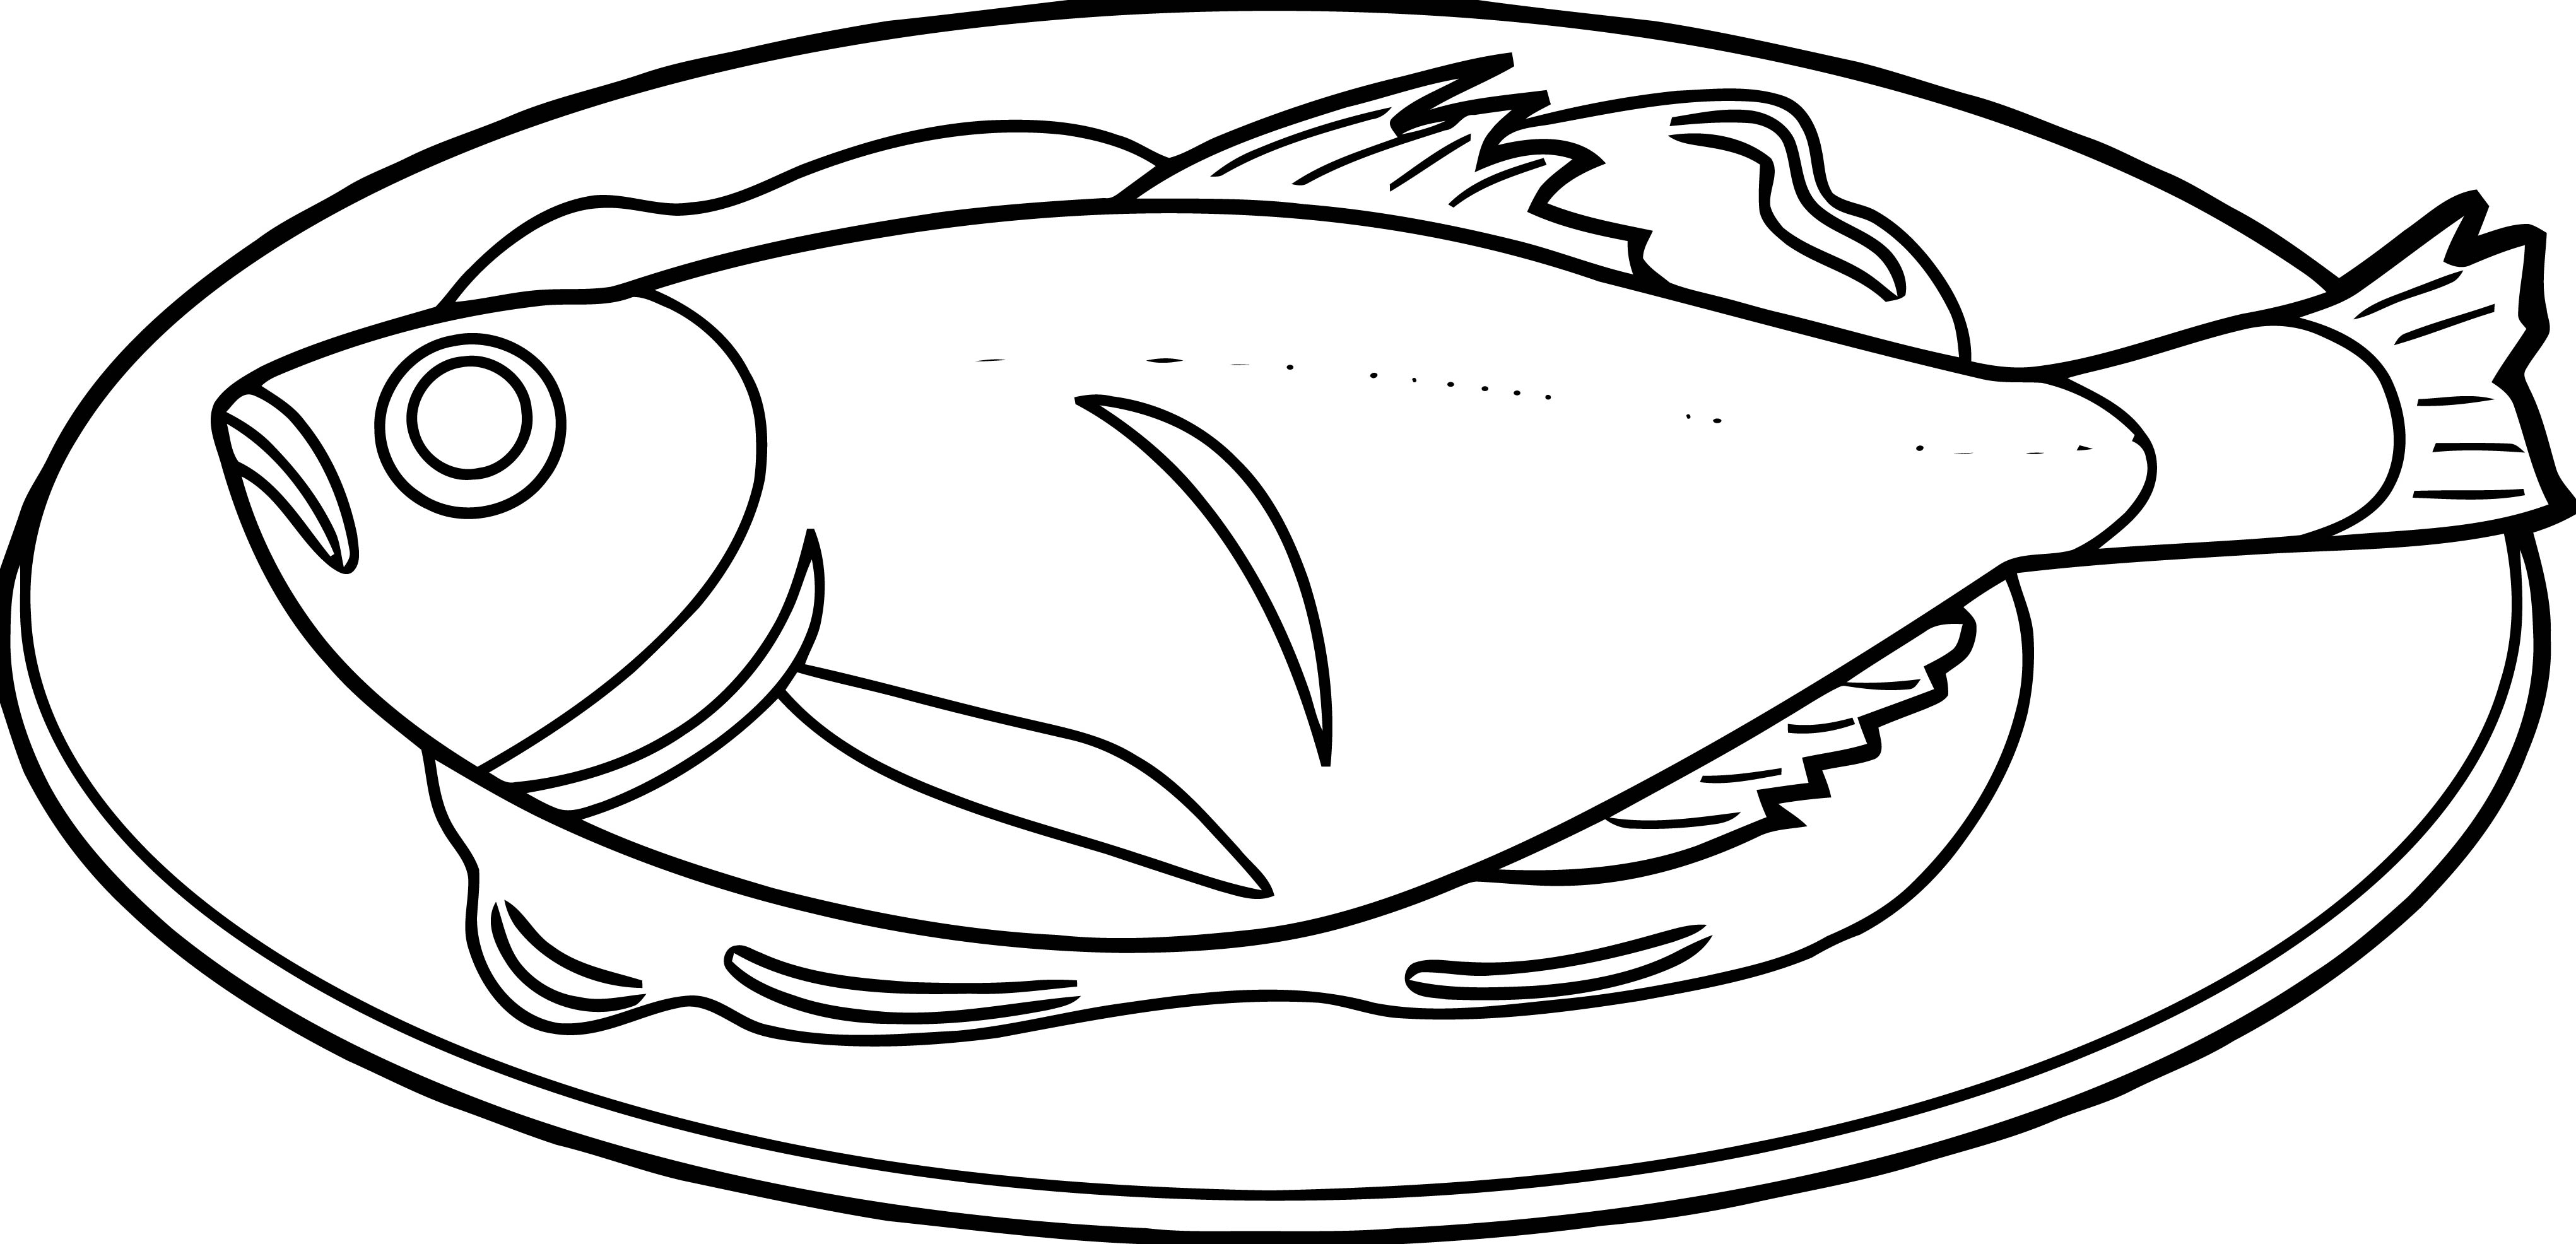 Fish Coloring Page Wecoloringpage 054